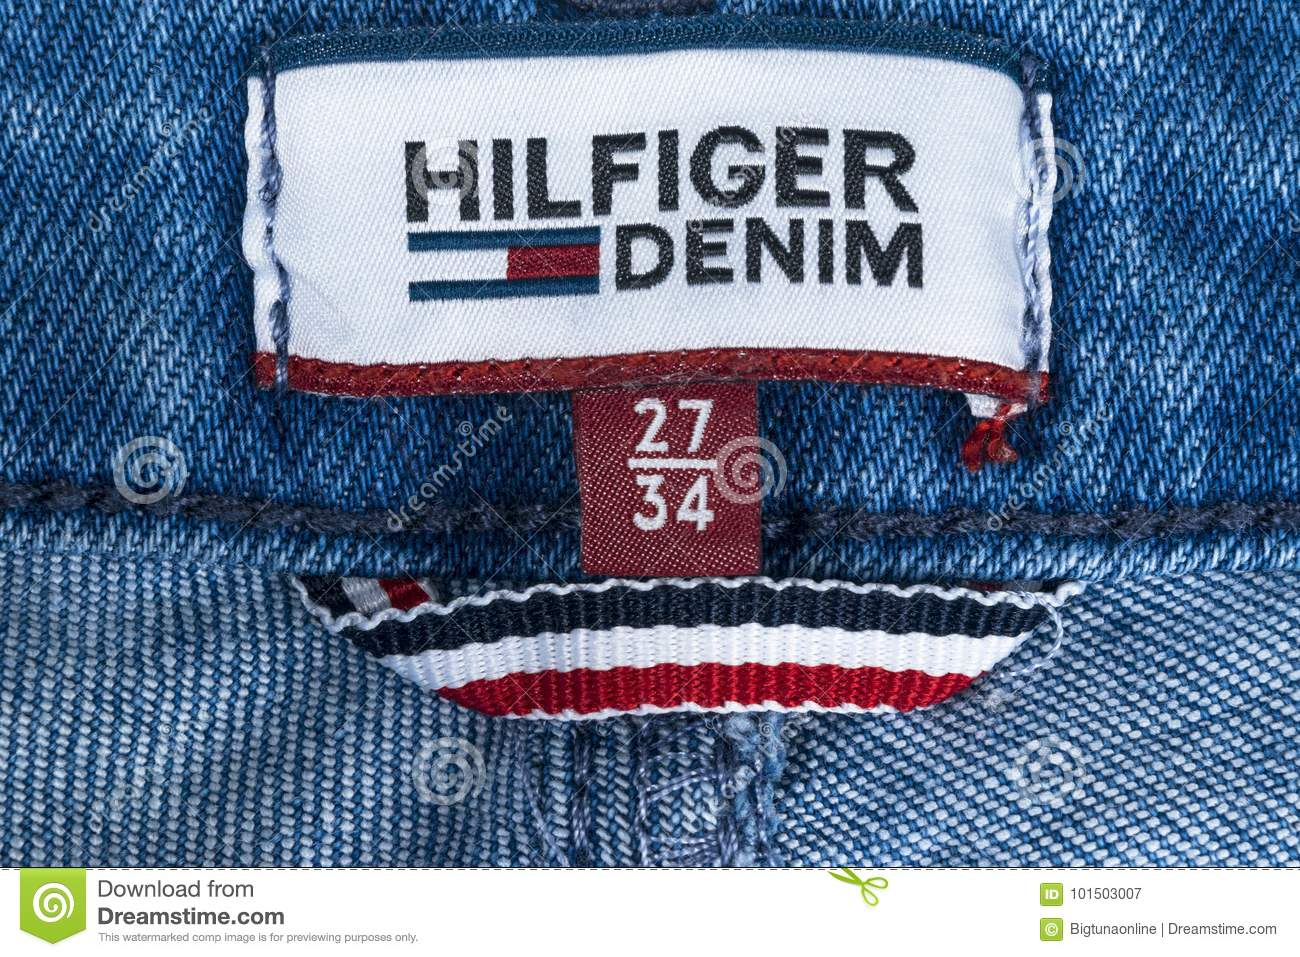 52990aa5 Closeup of Tommy Hilfiger label on blue jeans. Tommy Hilfiger is lifestyle  brand. Hilfiger